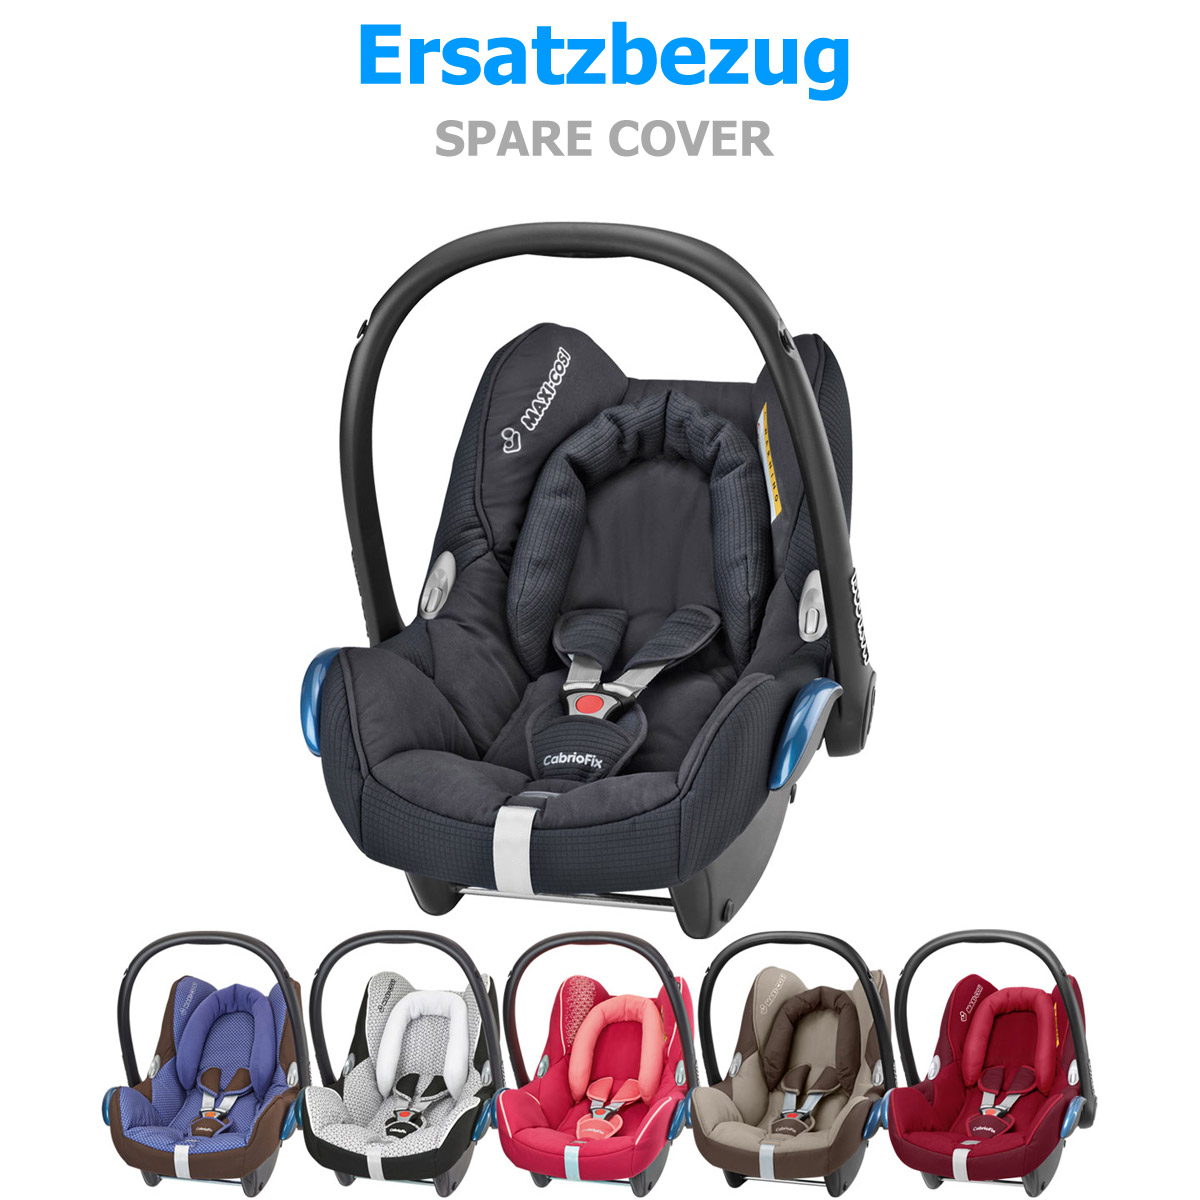 maxi cosi infant car seat cover for cabriofix design 2014 selectable colors ebay. Black Bedroom Furniture Sets. Home Design Ideas